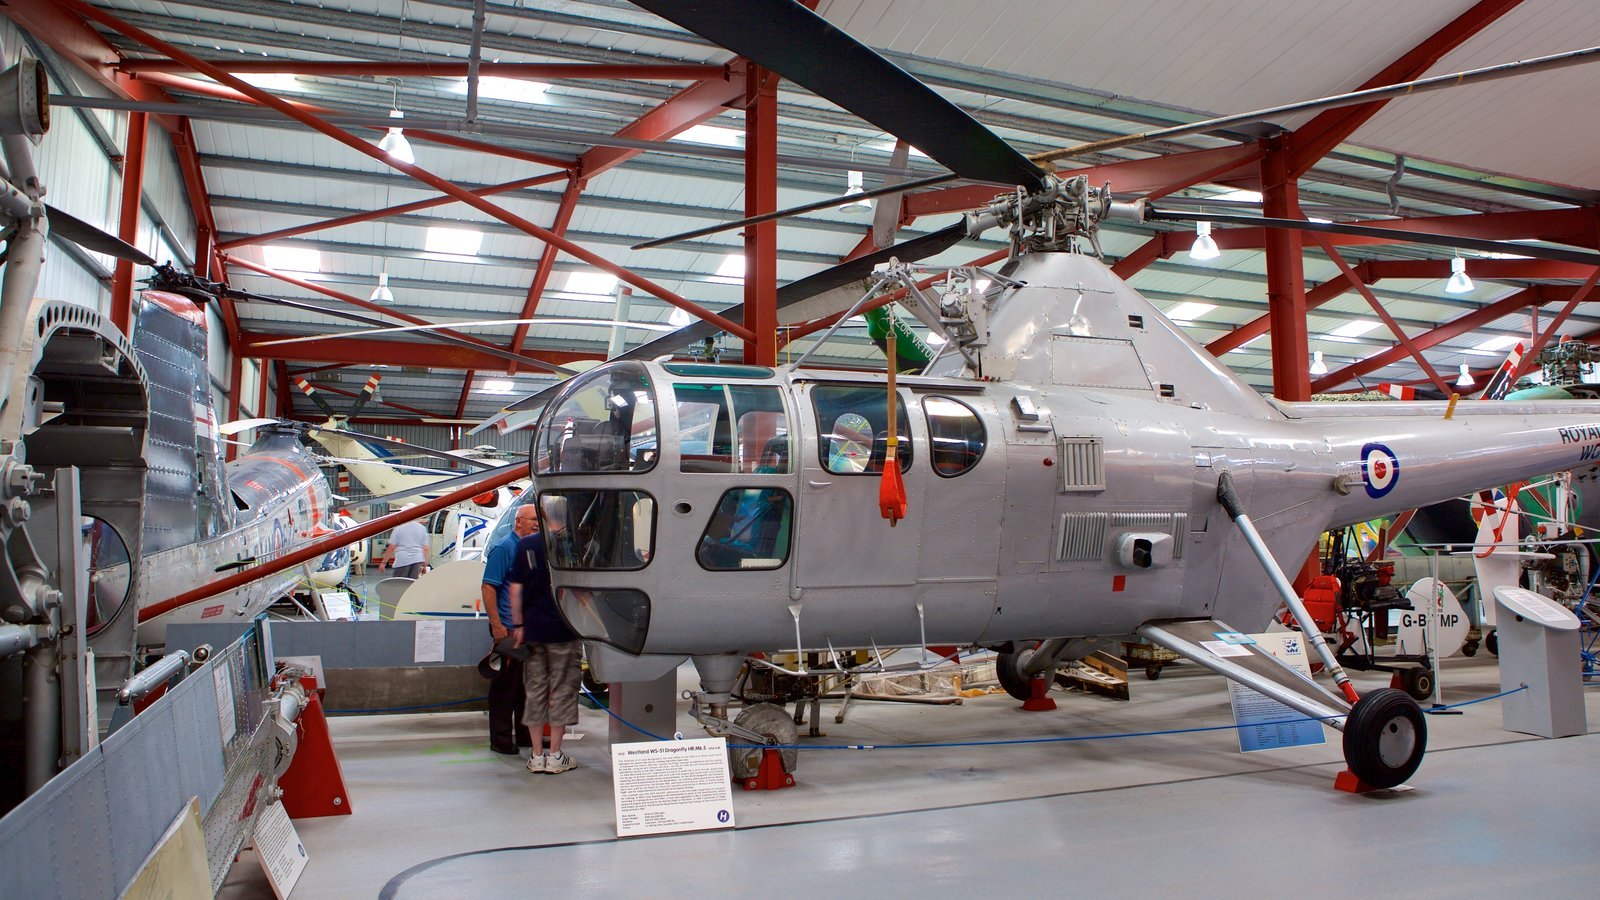 International Helicopter Museum showing interior views and aircraft